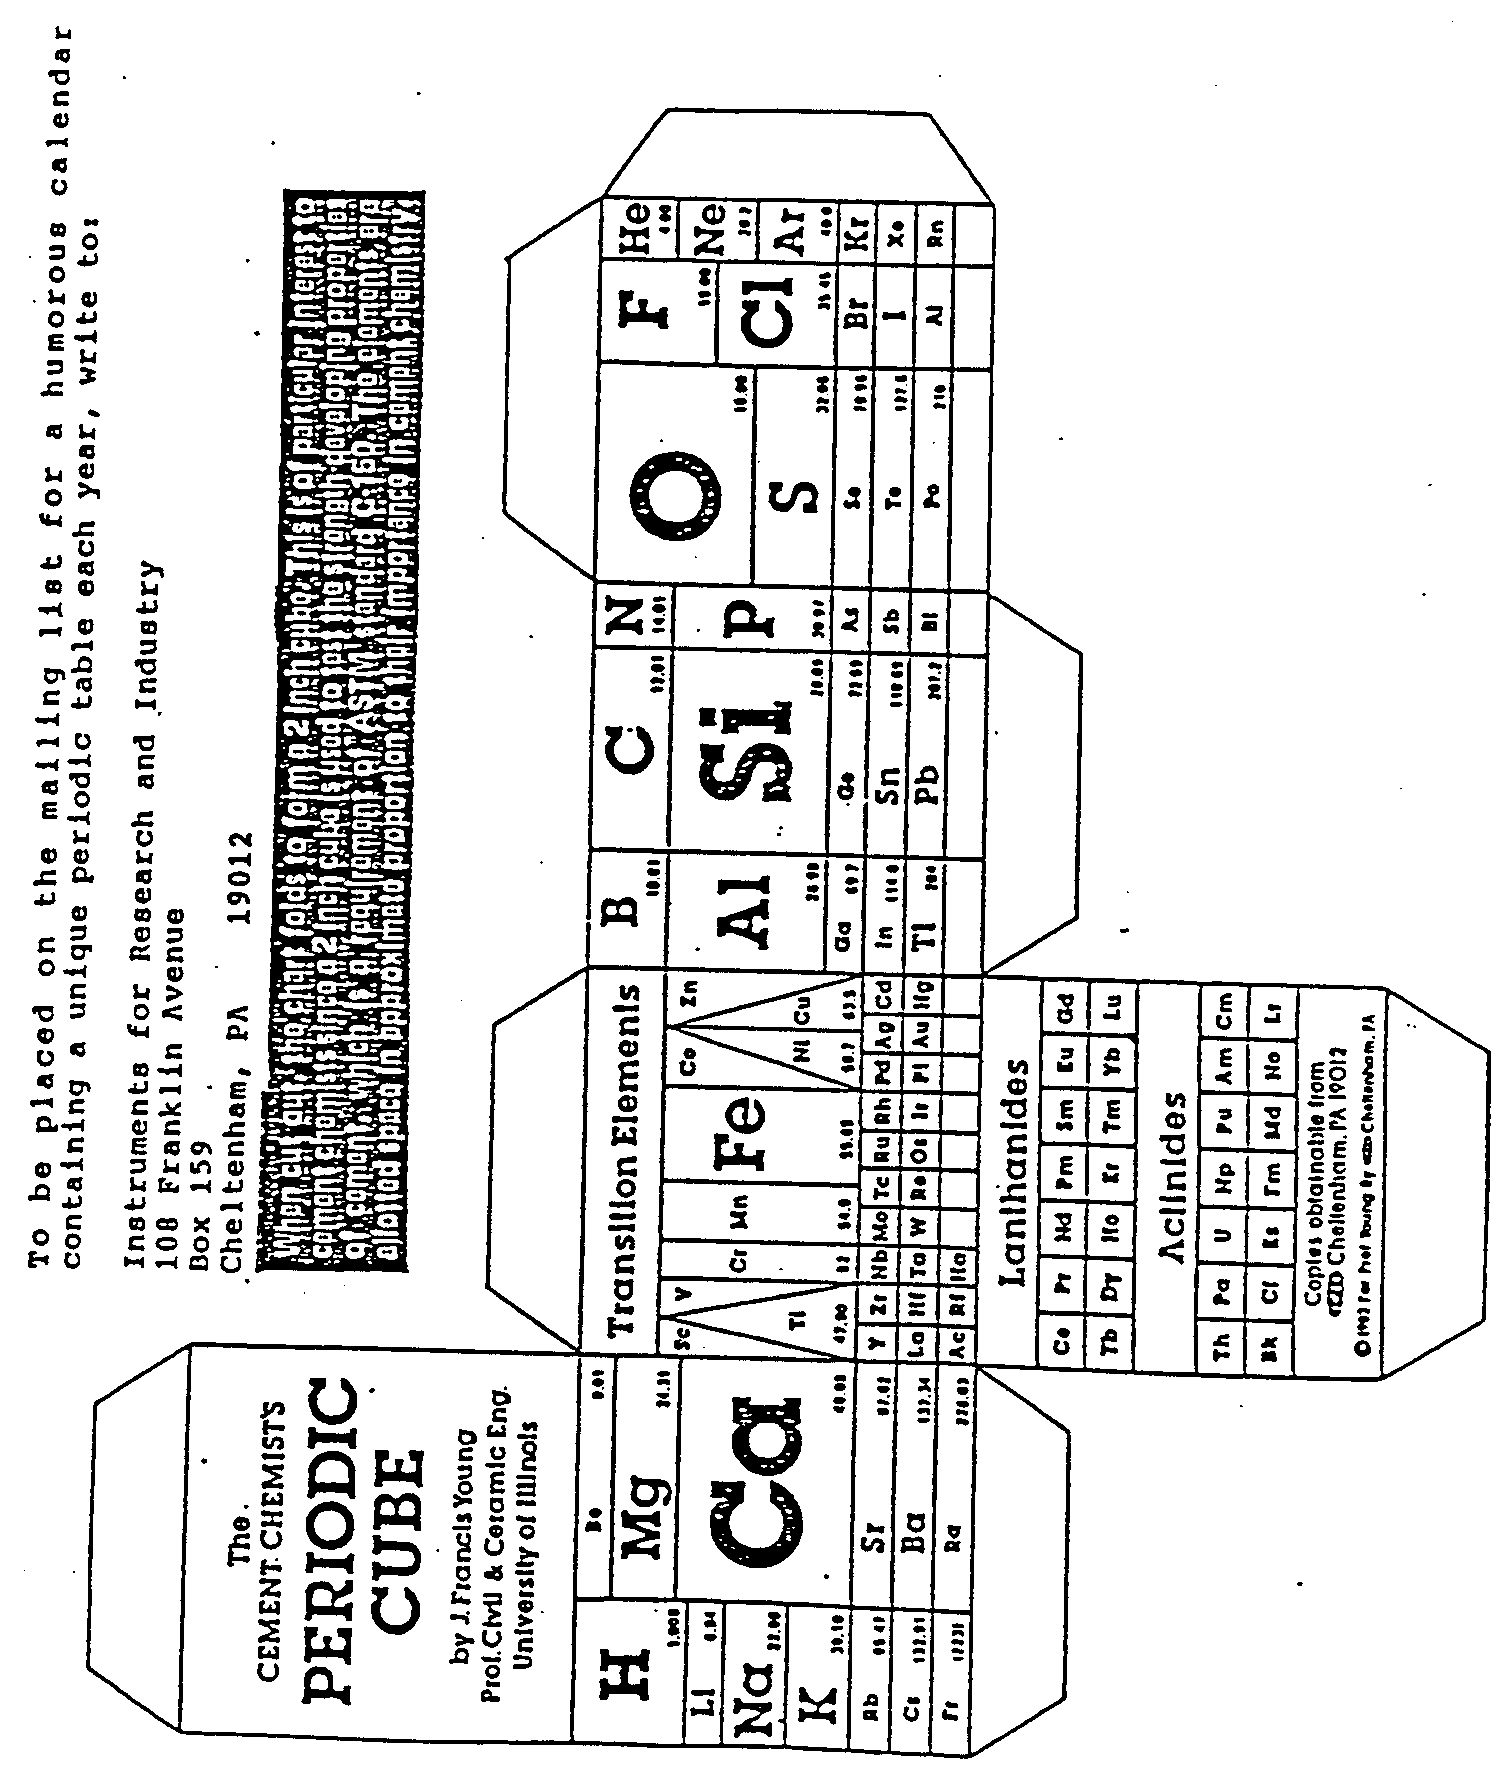 17 Best Images Of Using The Periodic Table Worksheet